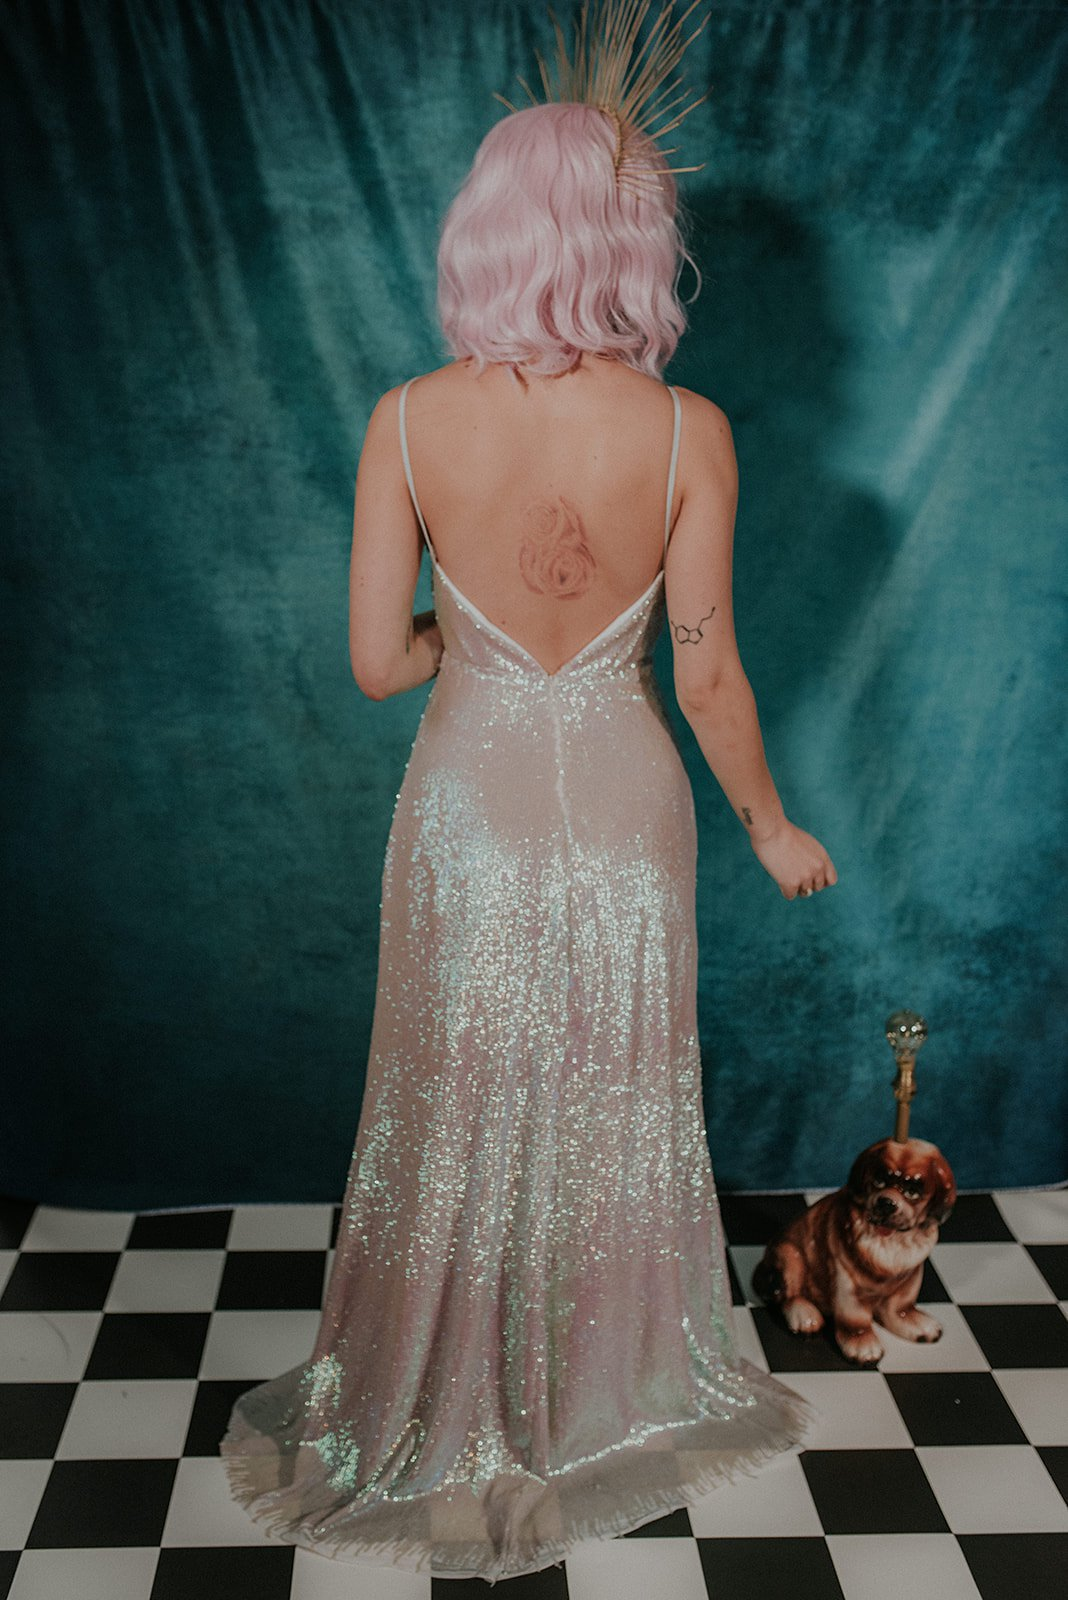 Lucy Cant Dance Cosmic Rodeo Alternative wedding dresses separates Megan Elle Photography 00023.jpg